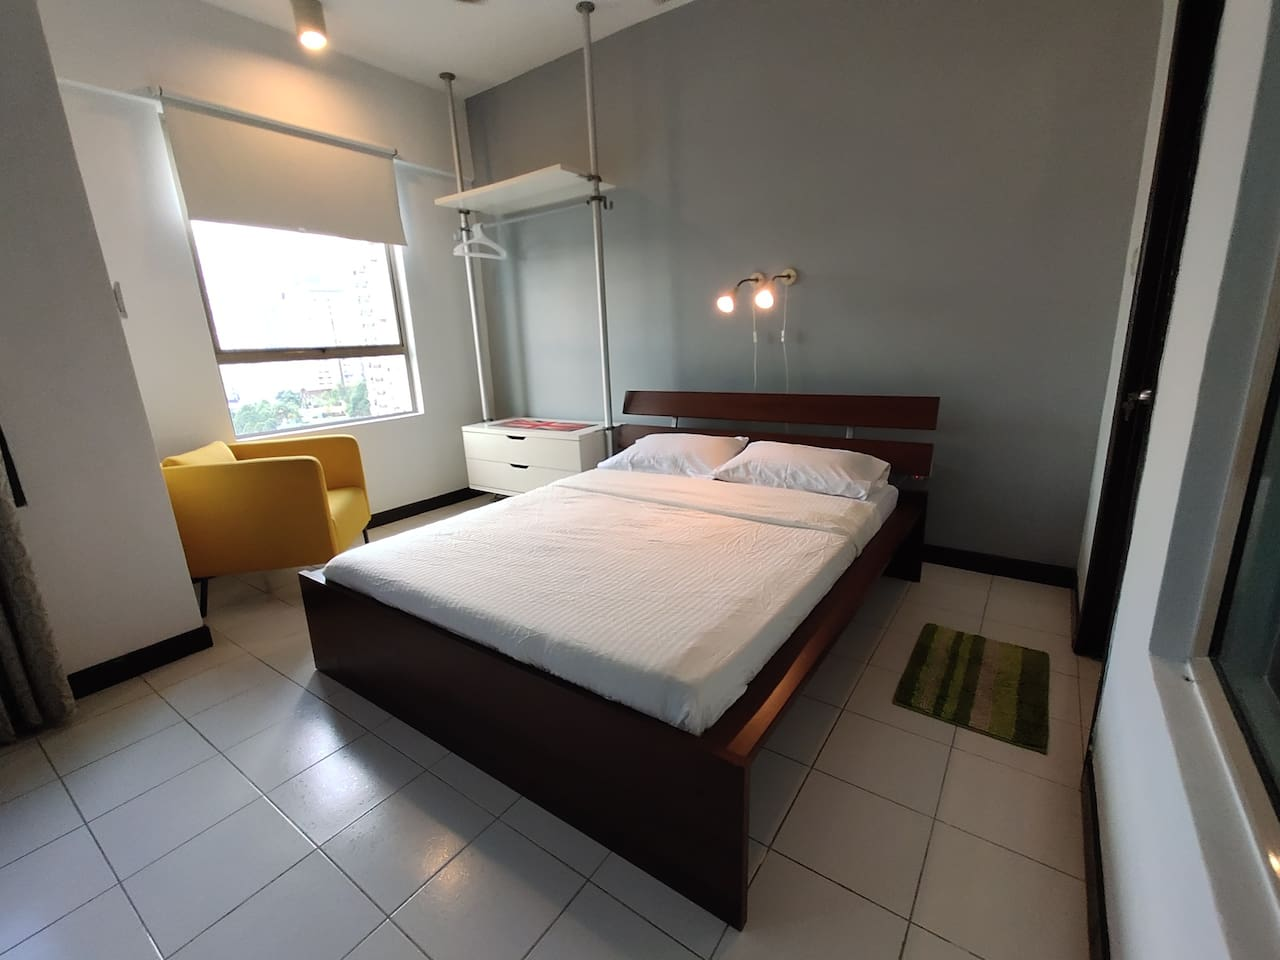 Fully furnished studio apartment with all the privacy and amenities you need to make your stay comfortable and memorable.